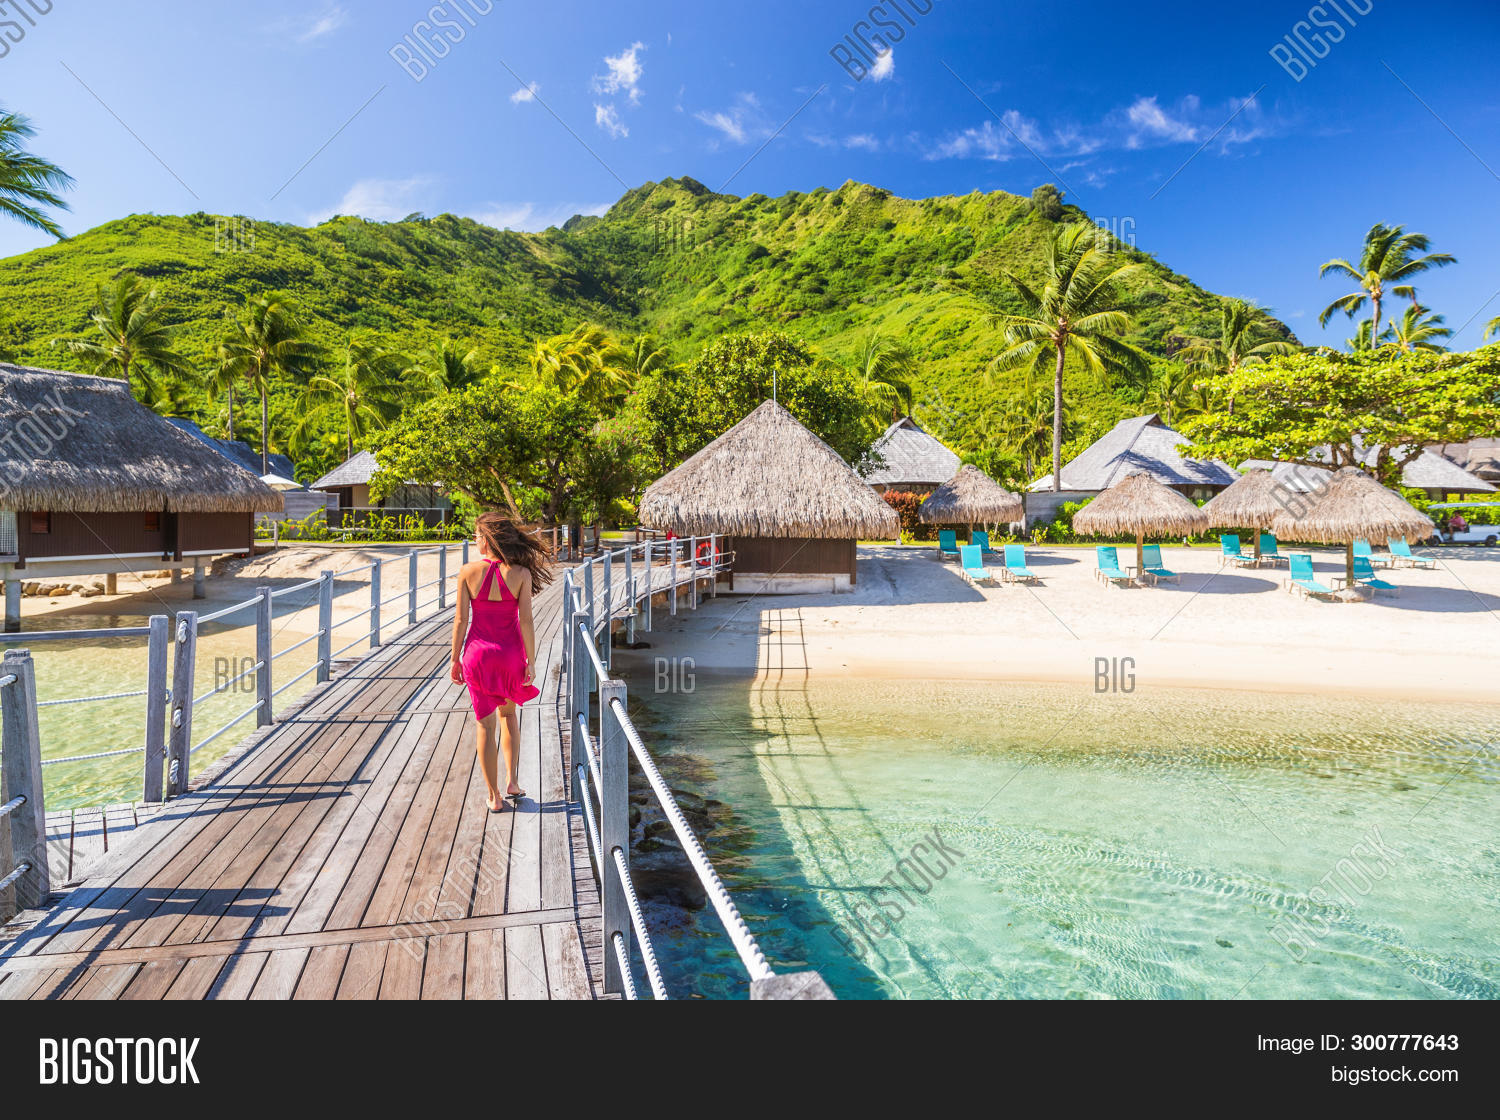 Overwater Bungalow Image Photo Free Trial Bigstock